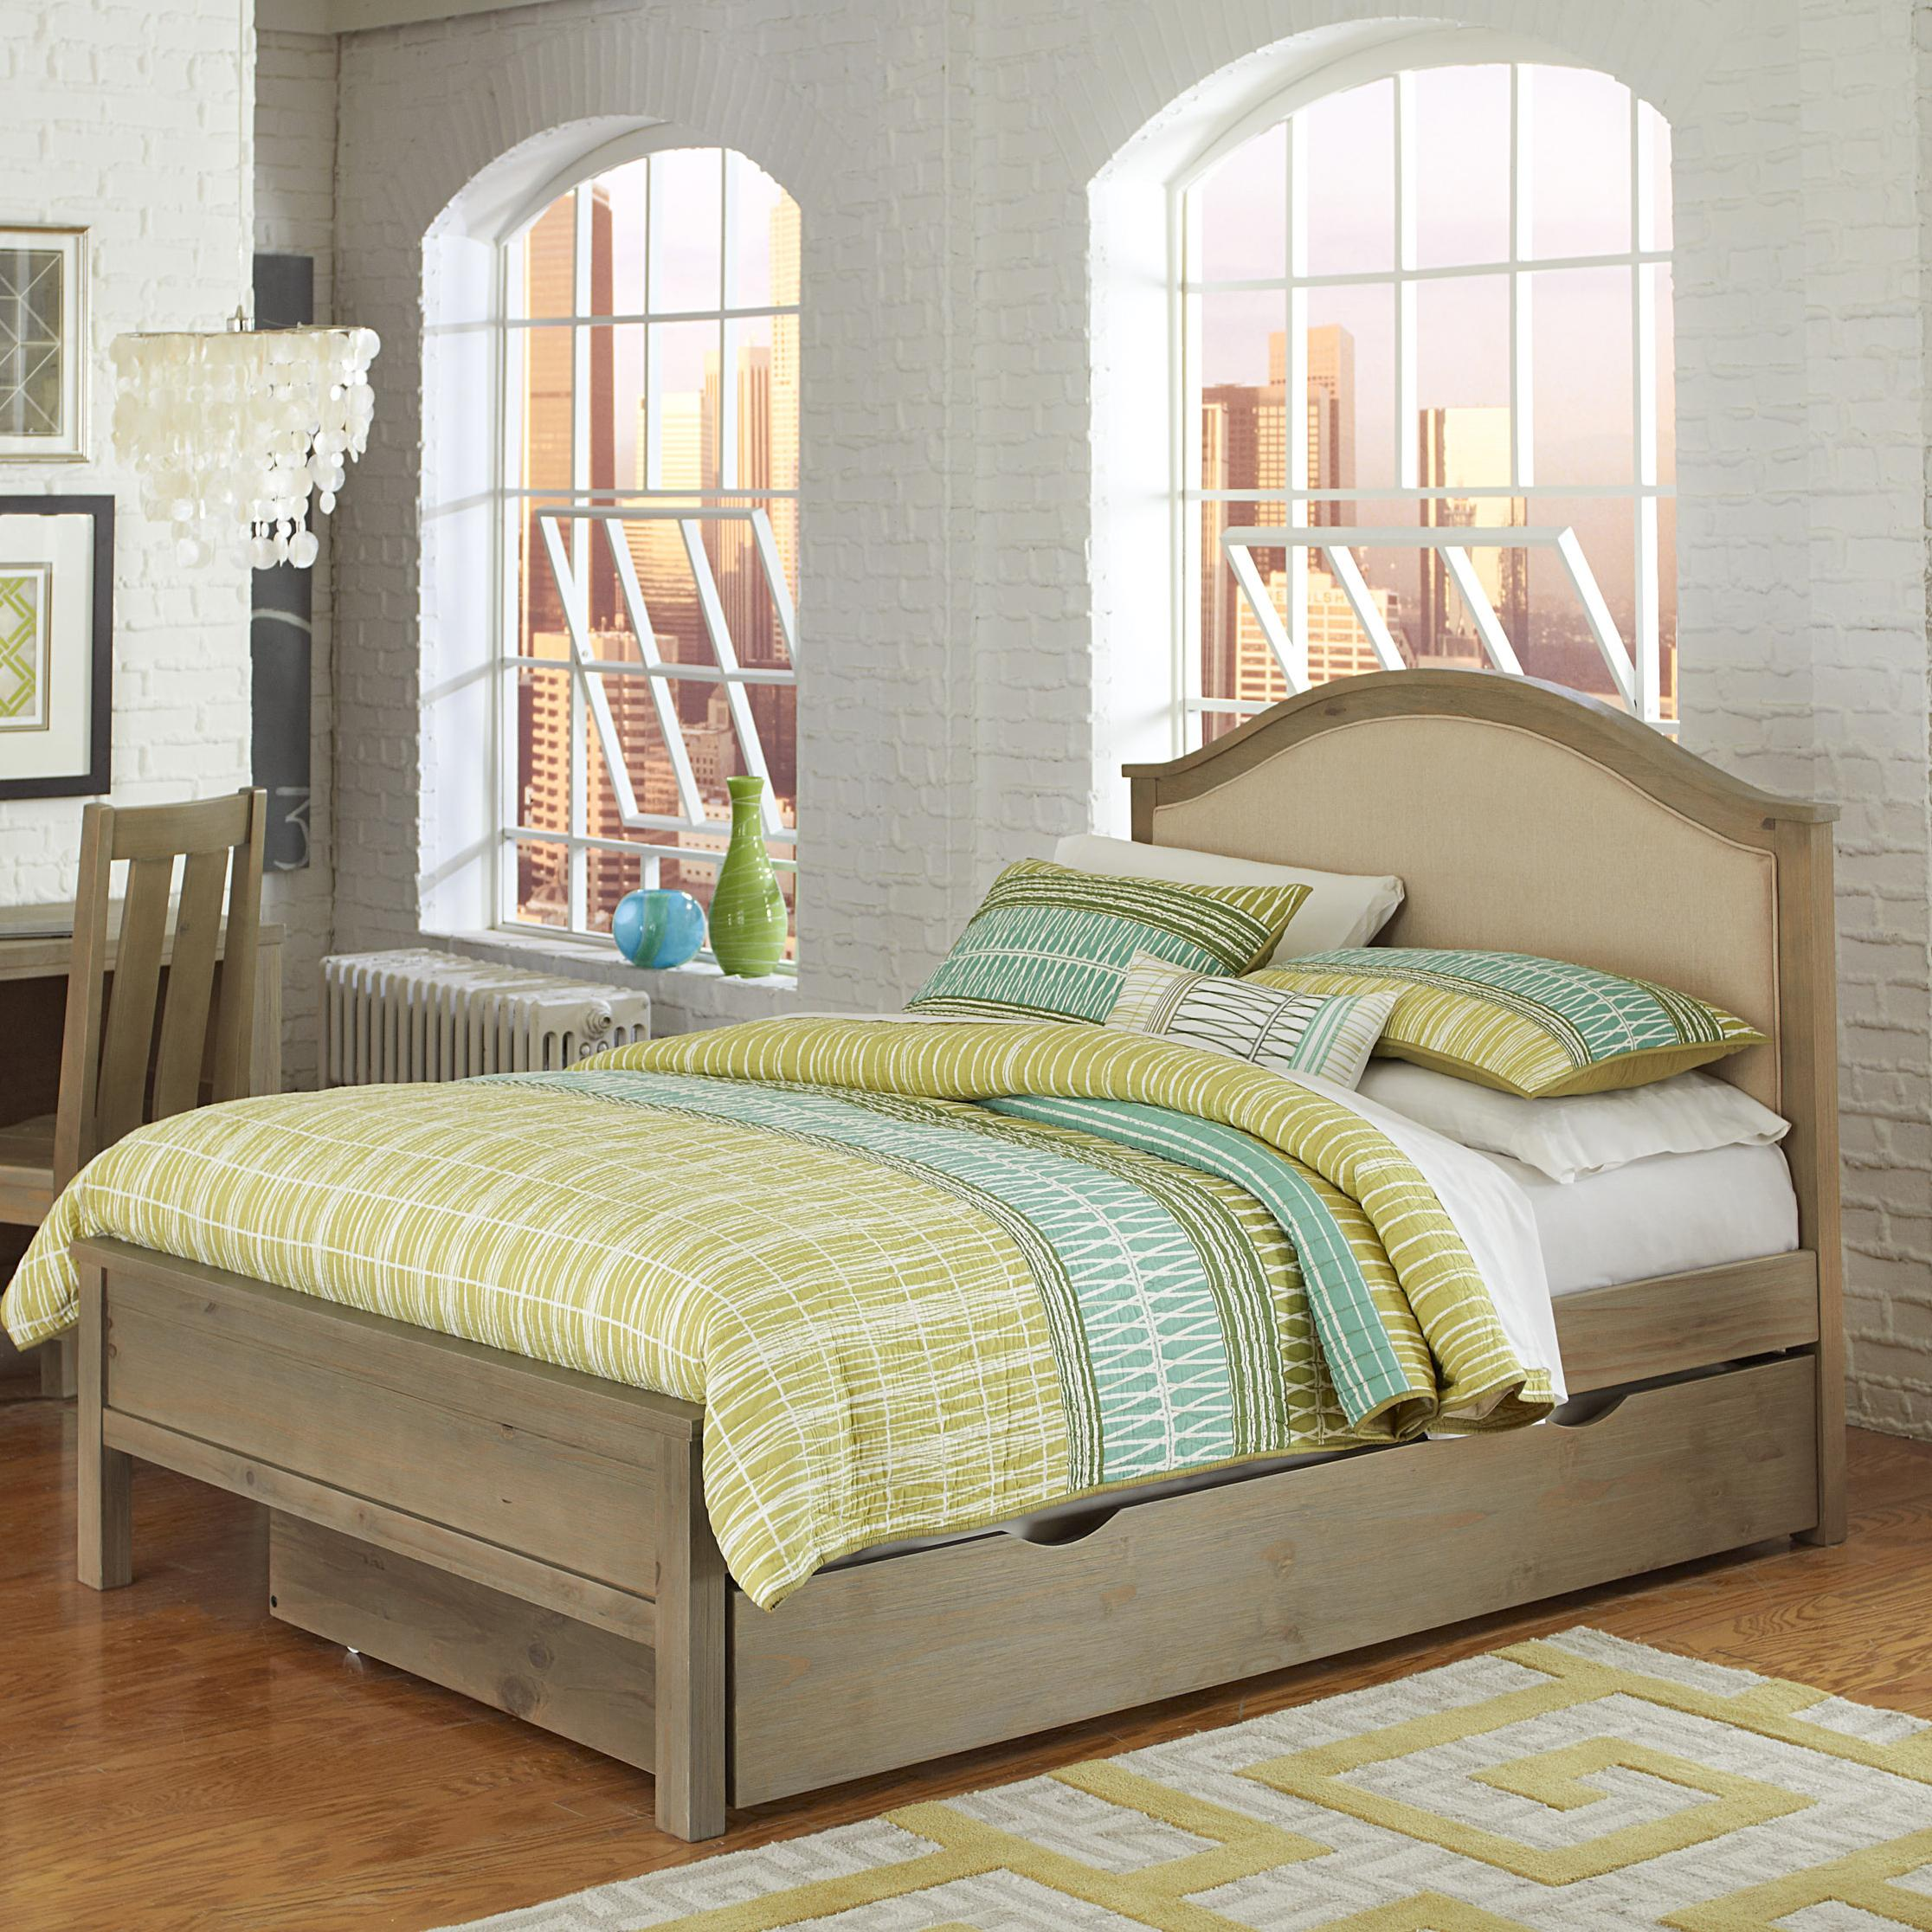 Highlands Full Bailey Upholstered Bed with Trundle by NE Kids at Stoney Creek Furniture